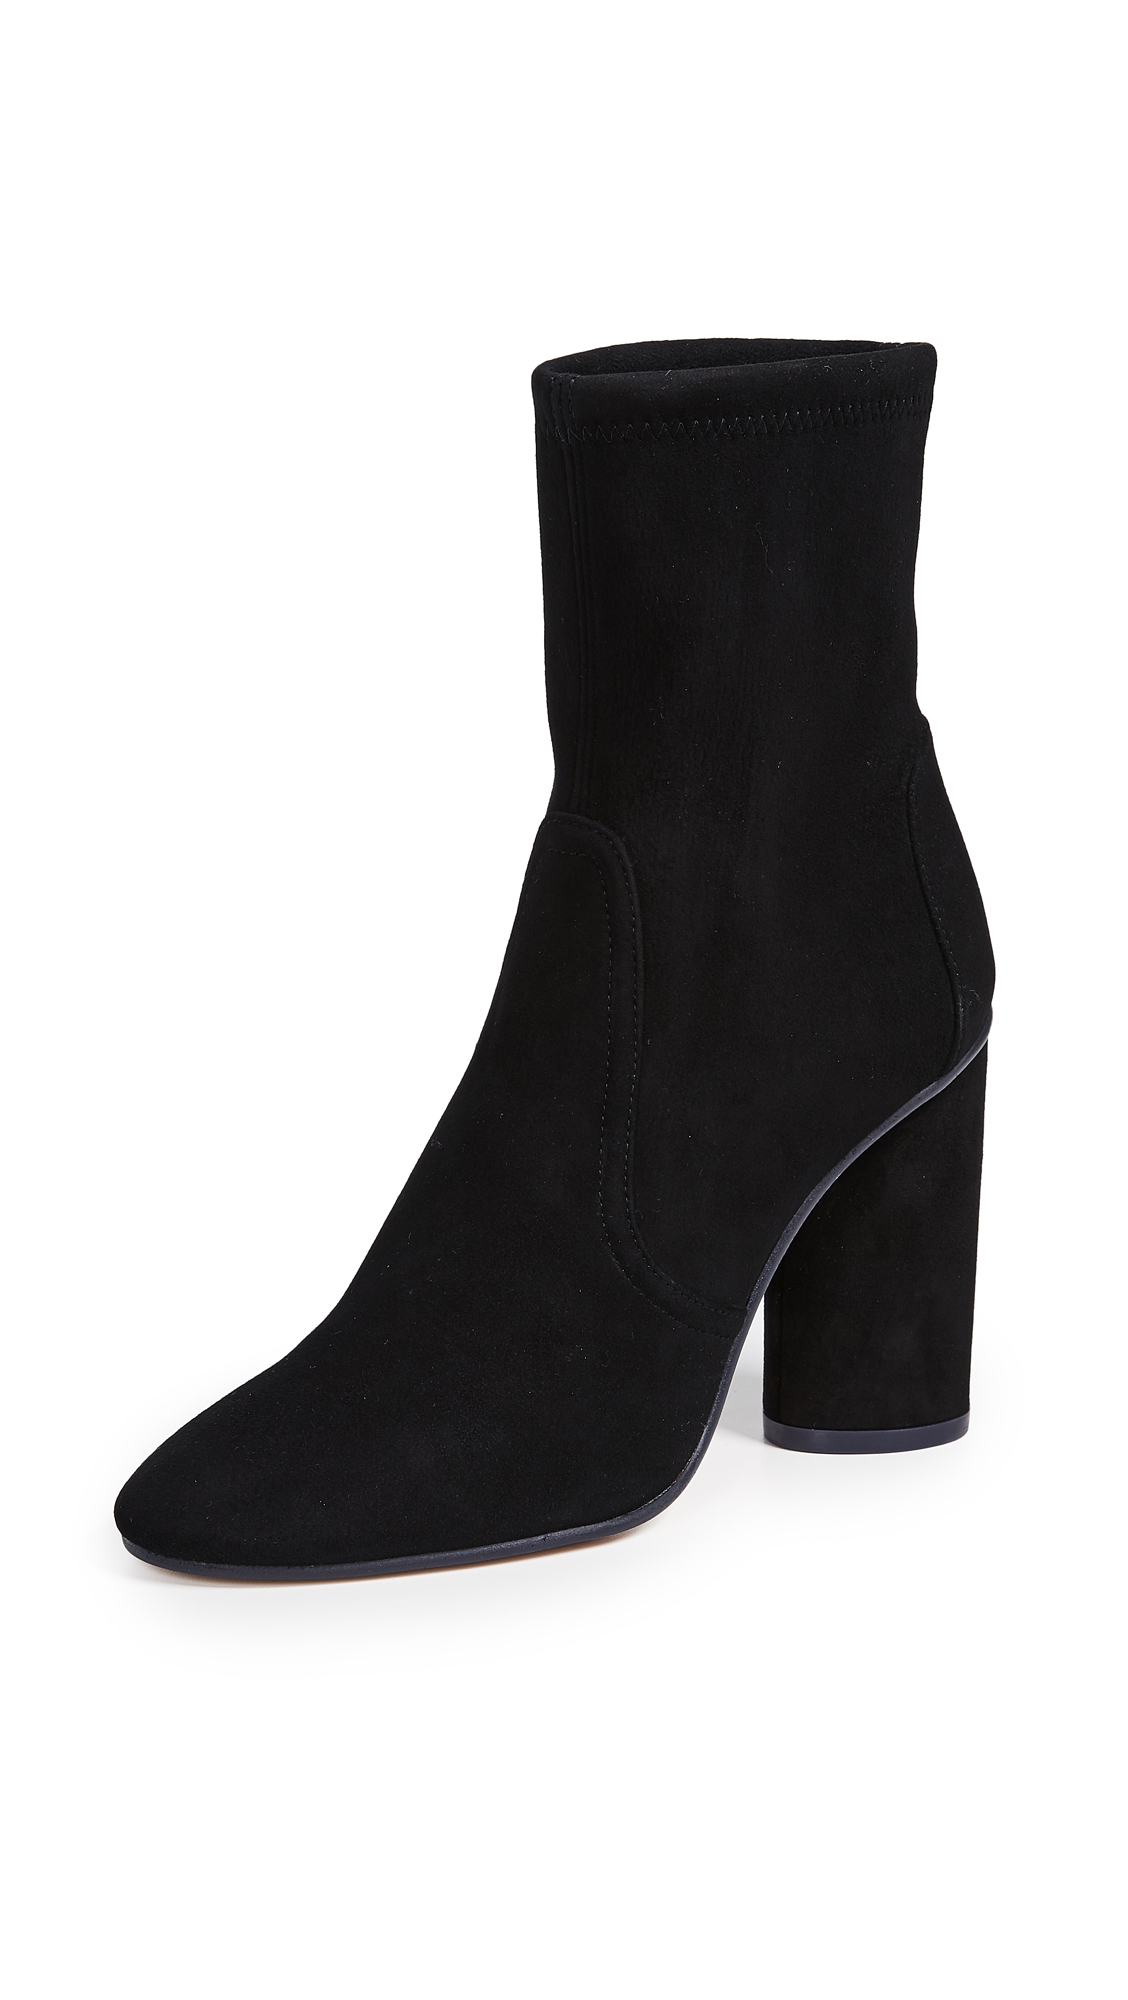 Stuart Weitzman Margot Booties - Black